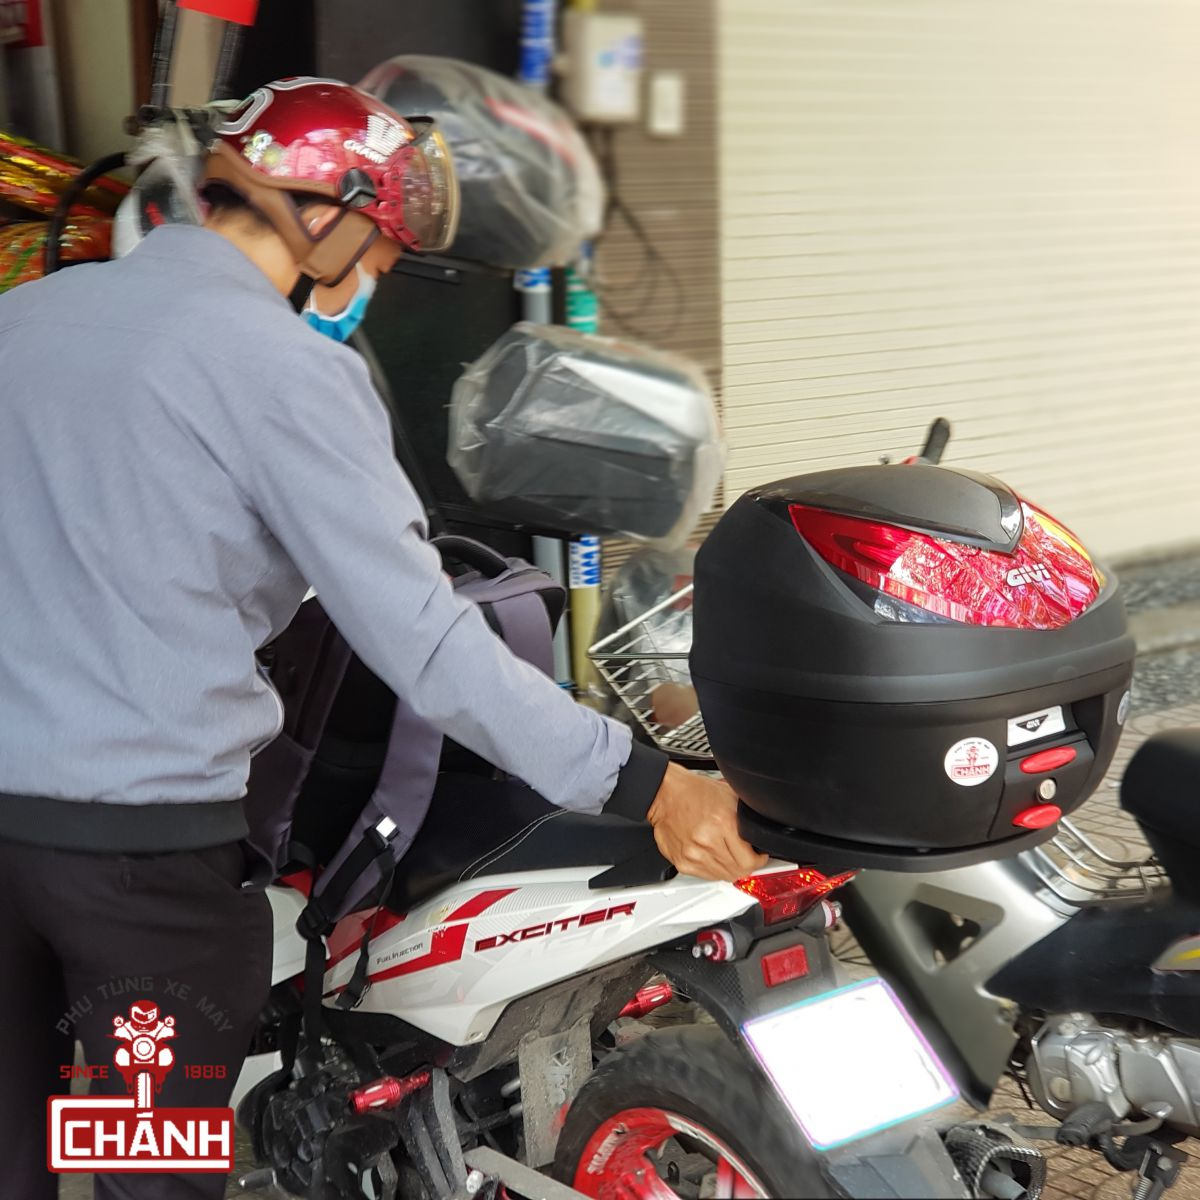 Thung-Givi-Exciter-150-11